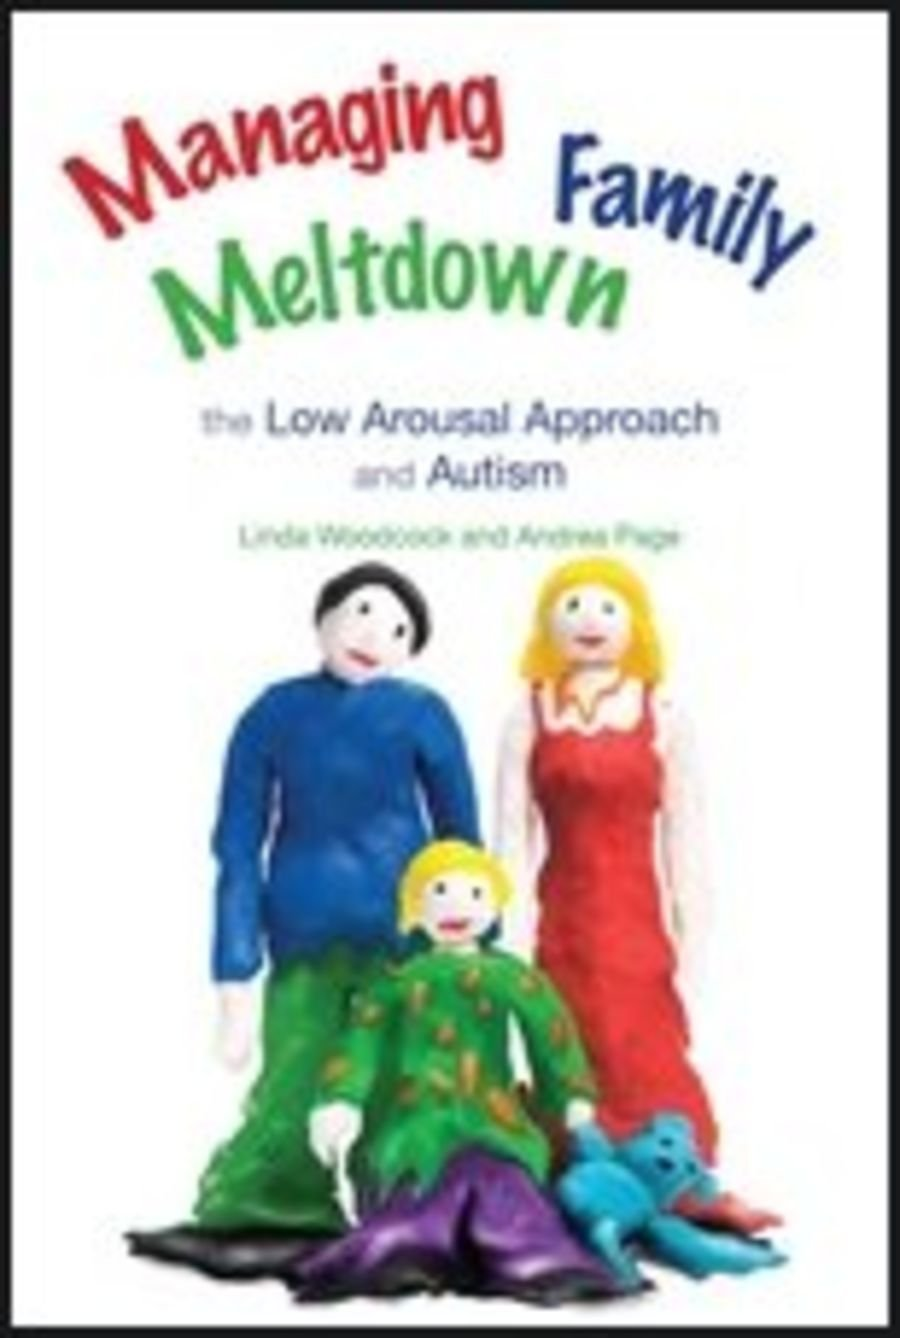 Managing Family Meltdown, the low arousal approach and autism.